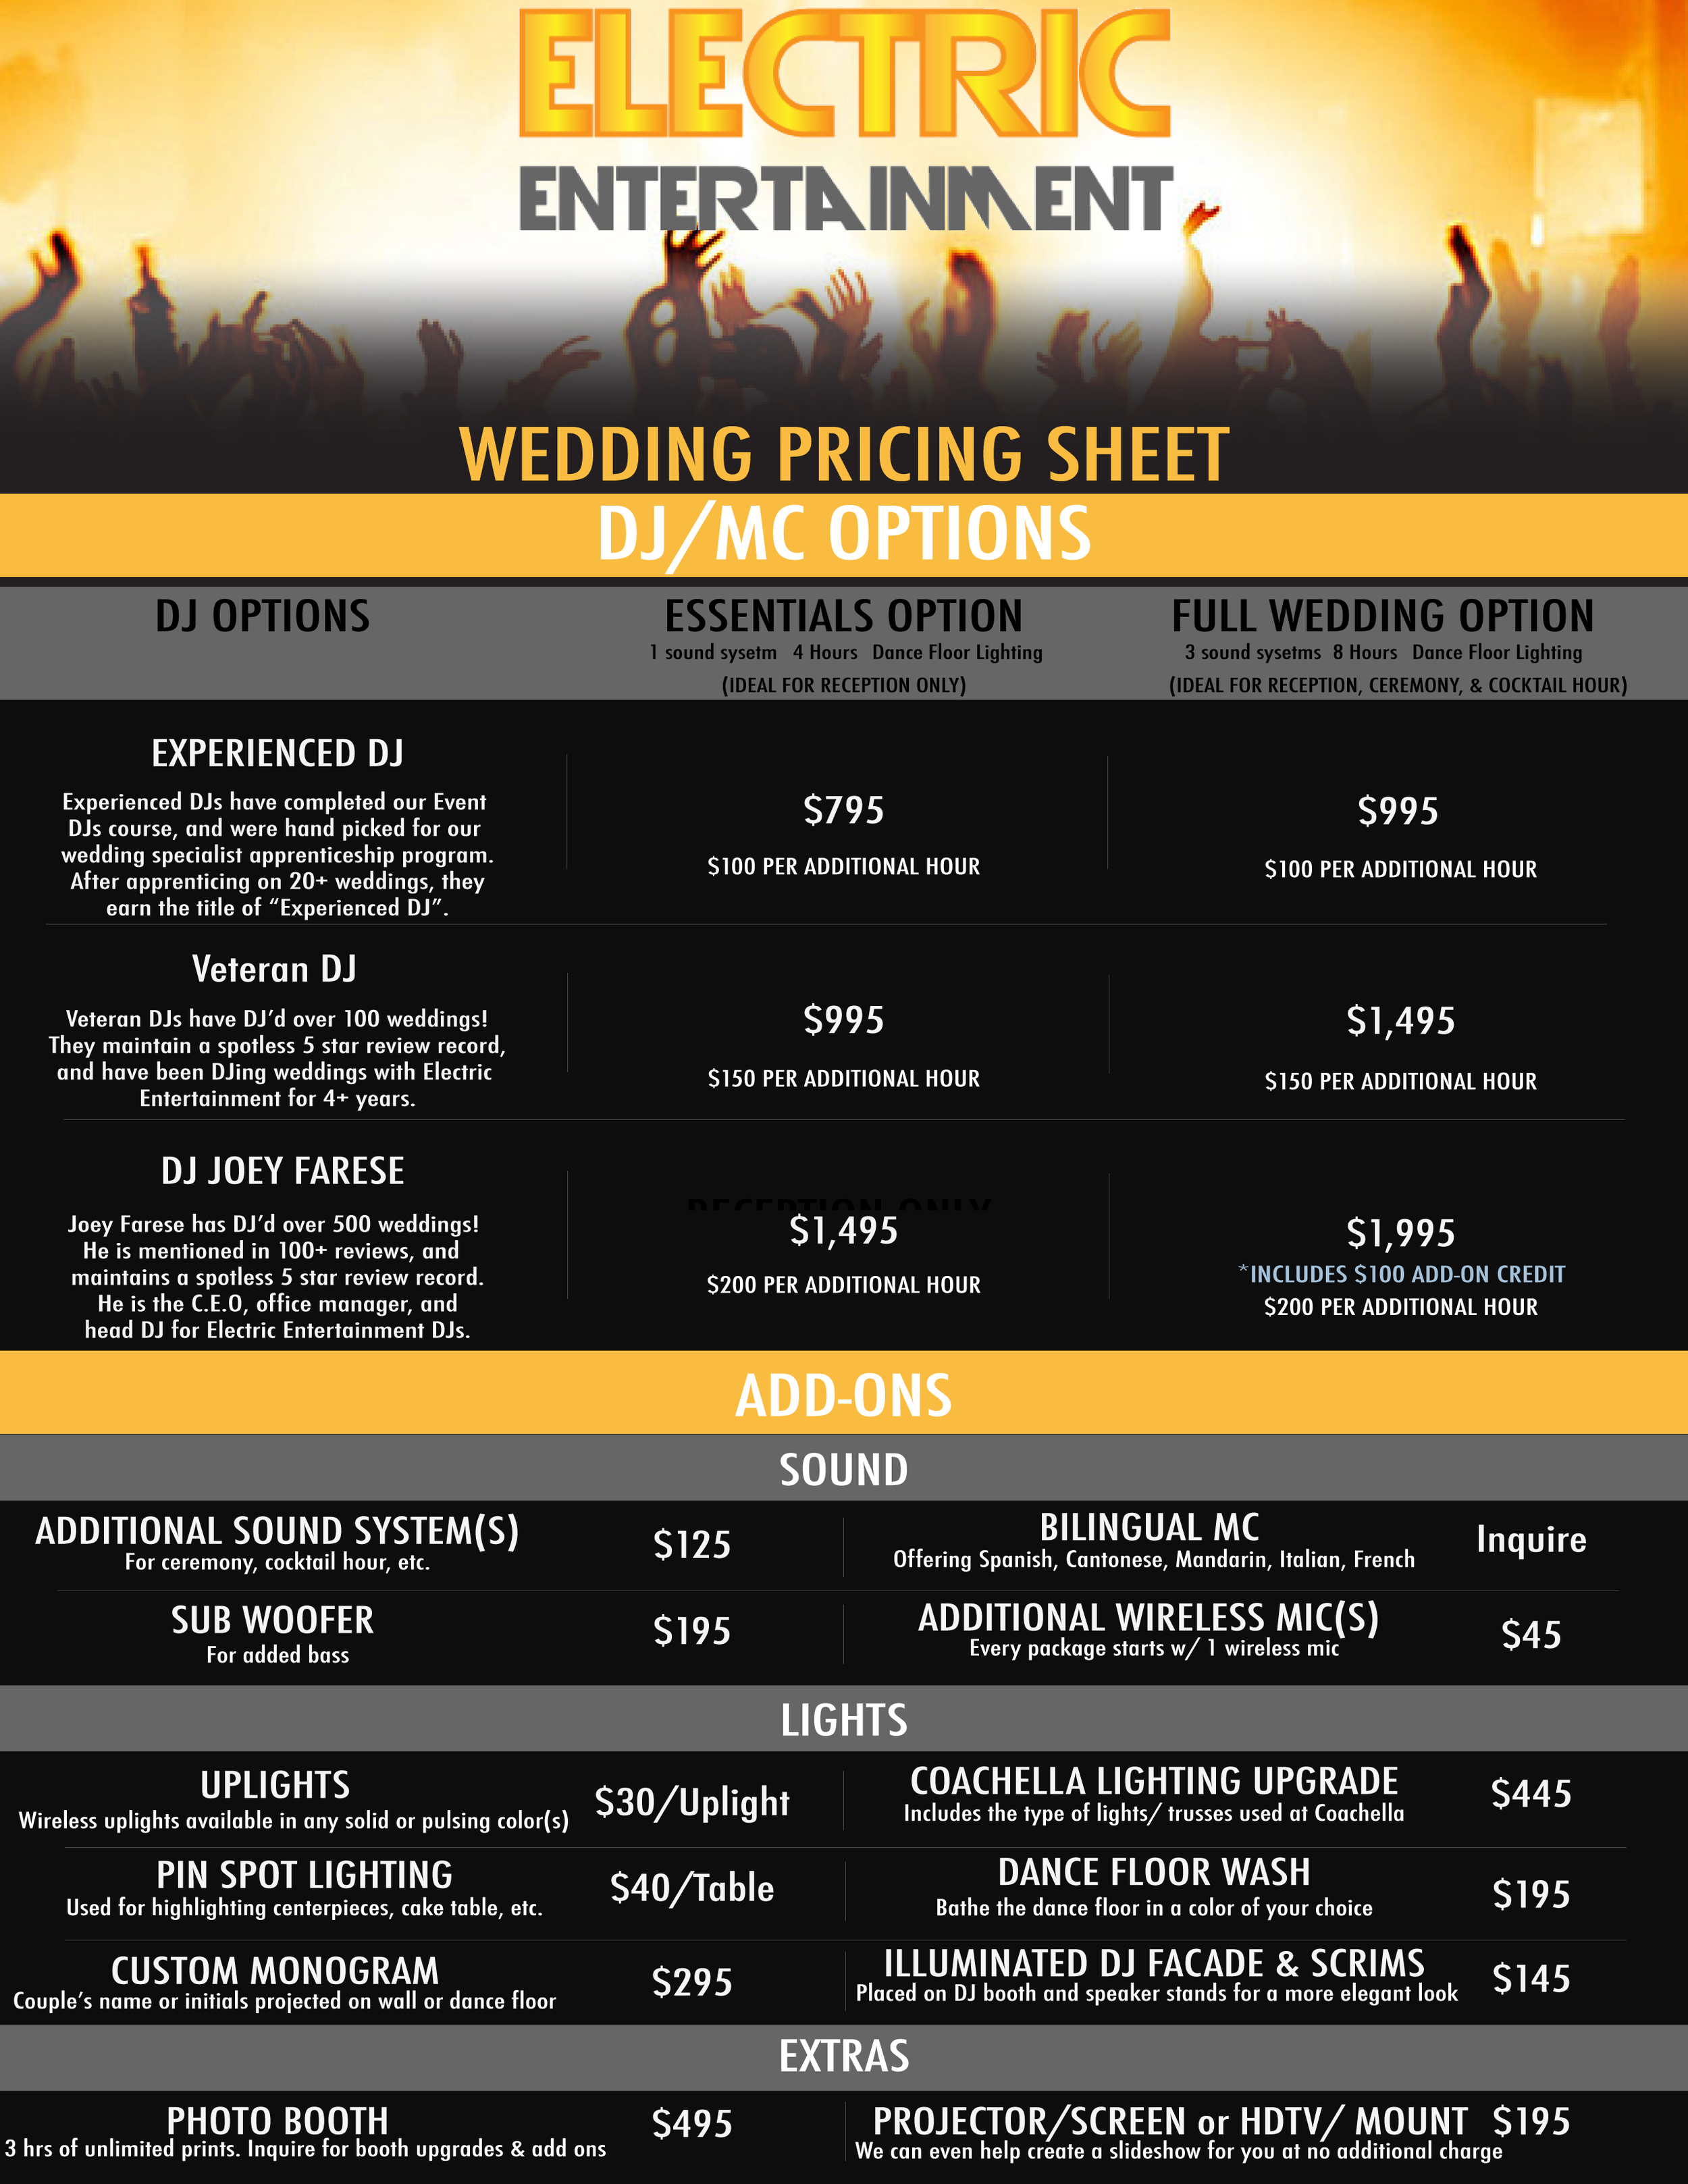 2019 wedding pricing sheet v3 DRAFT-01.png